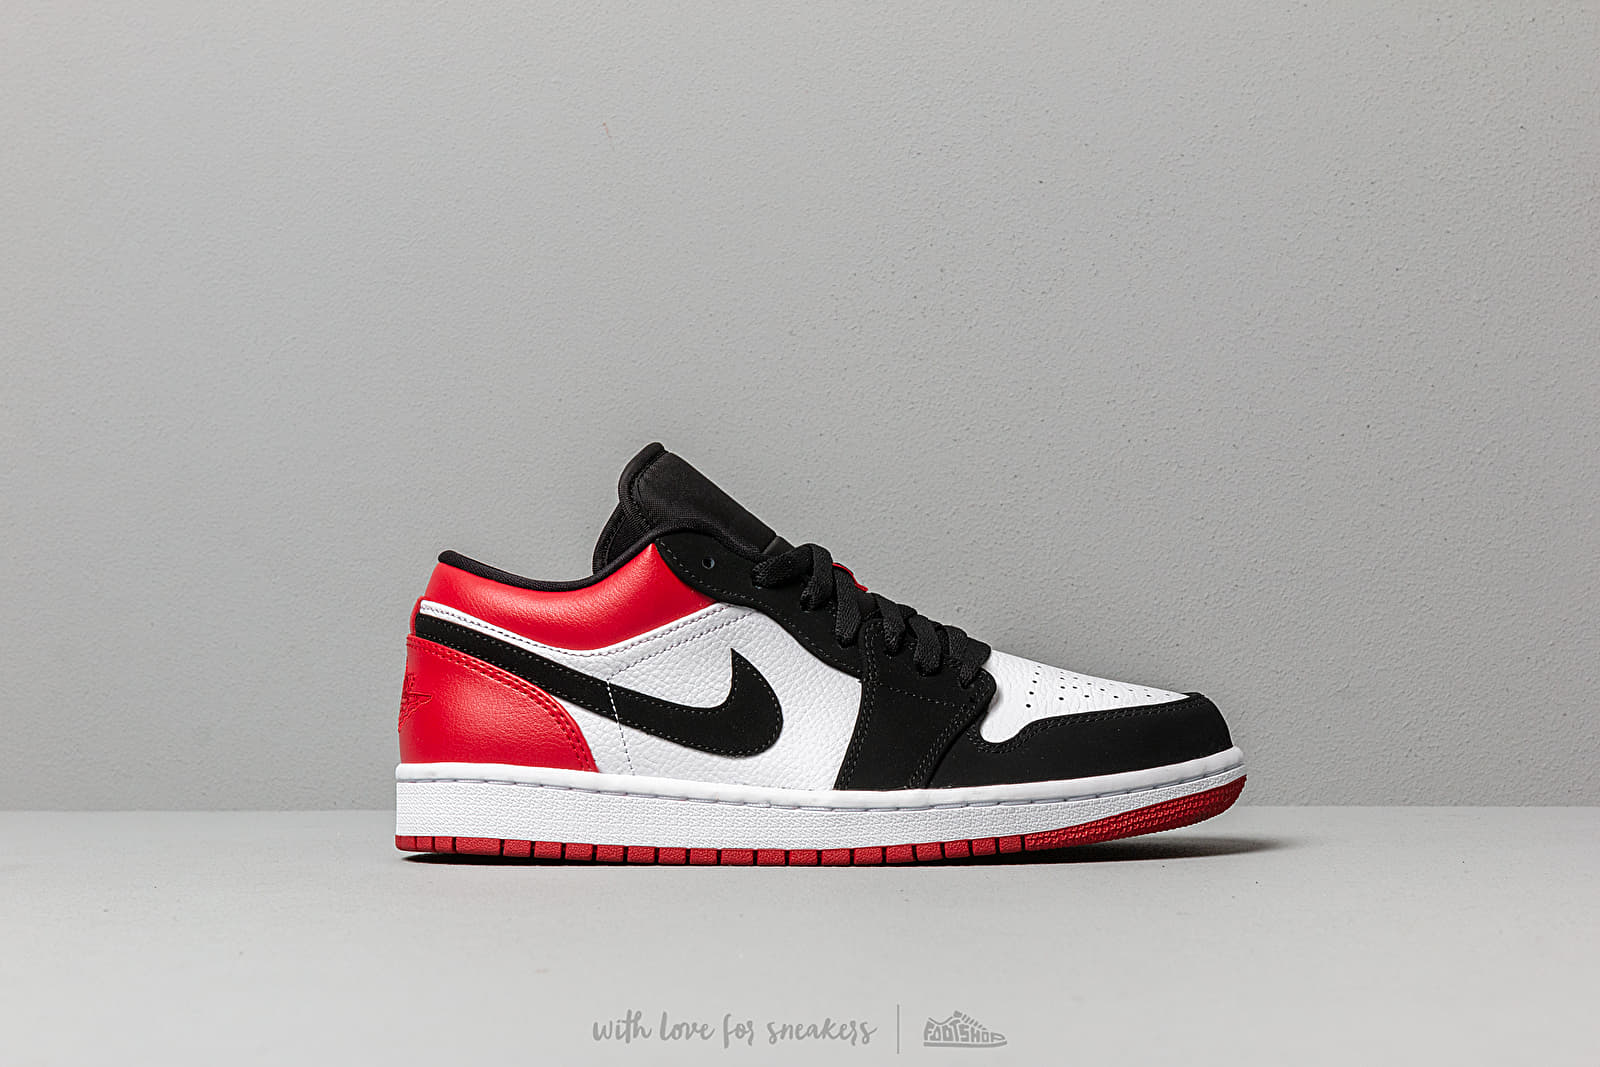 Air Jordan 1 Low White/ Black-Gym Red | Footshop